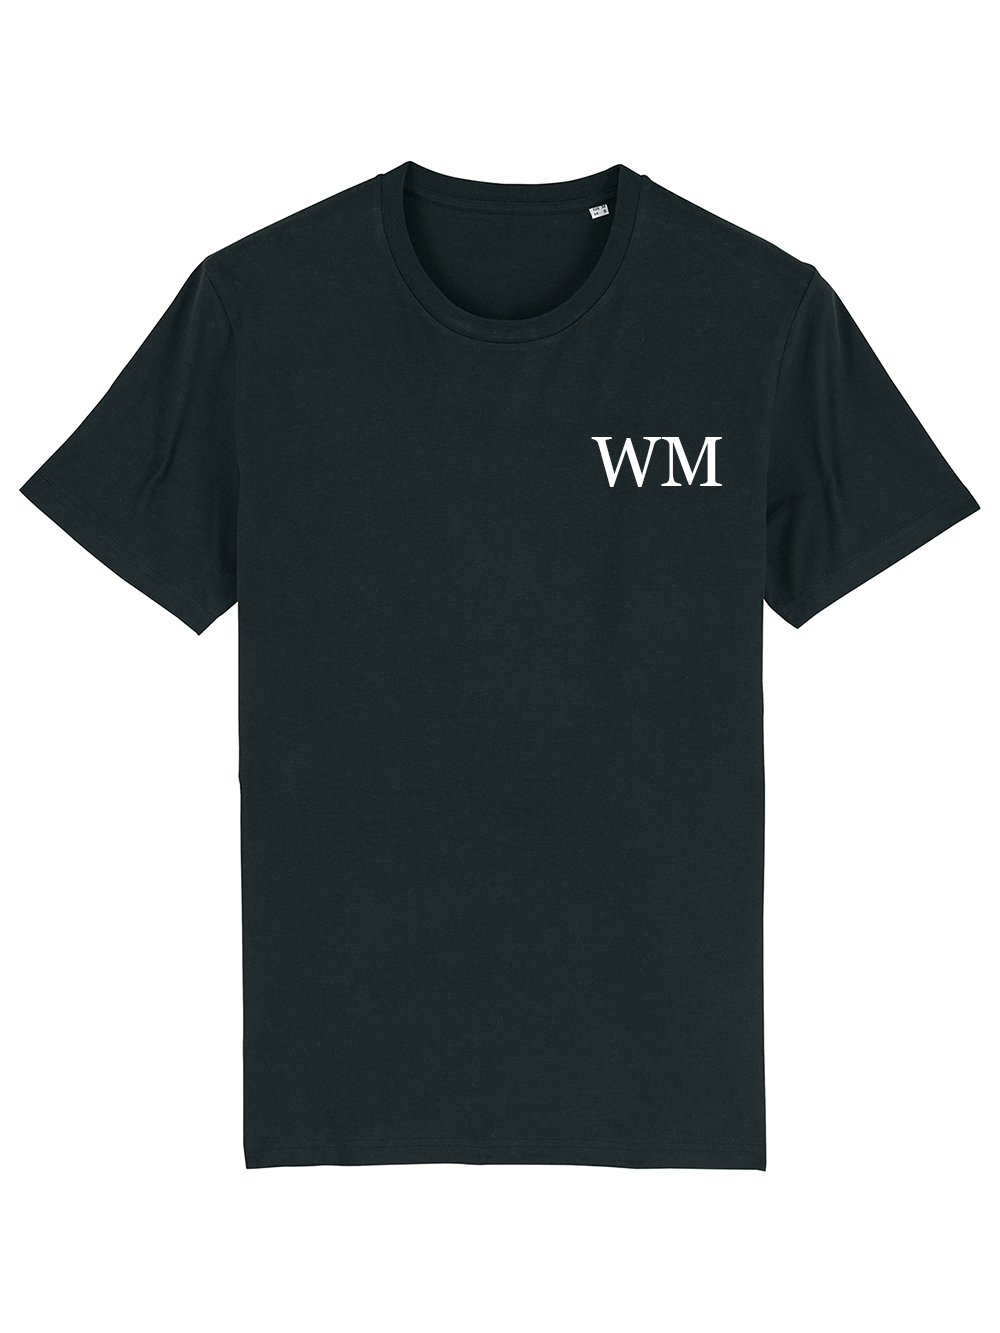 Mens Initial Tshirt – Black